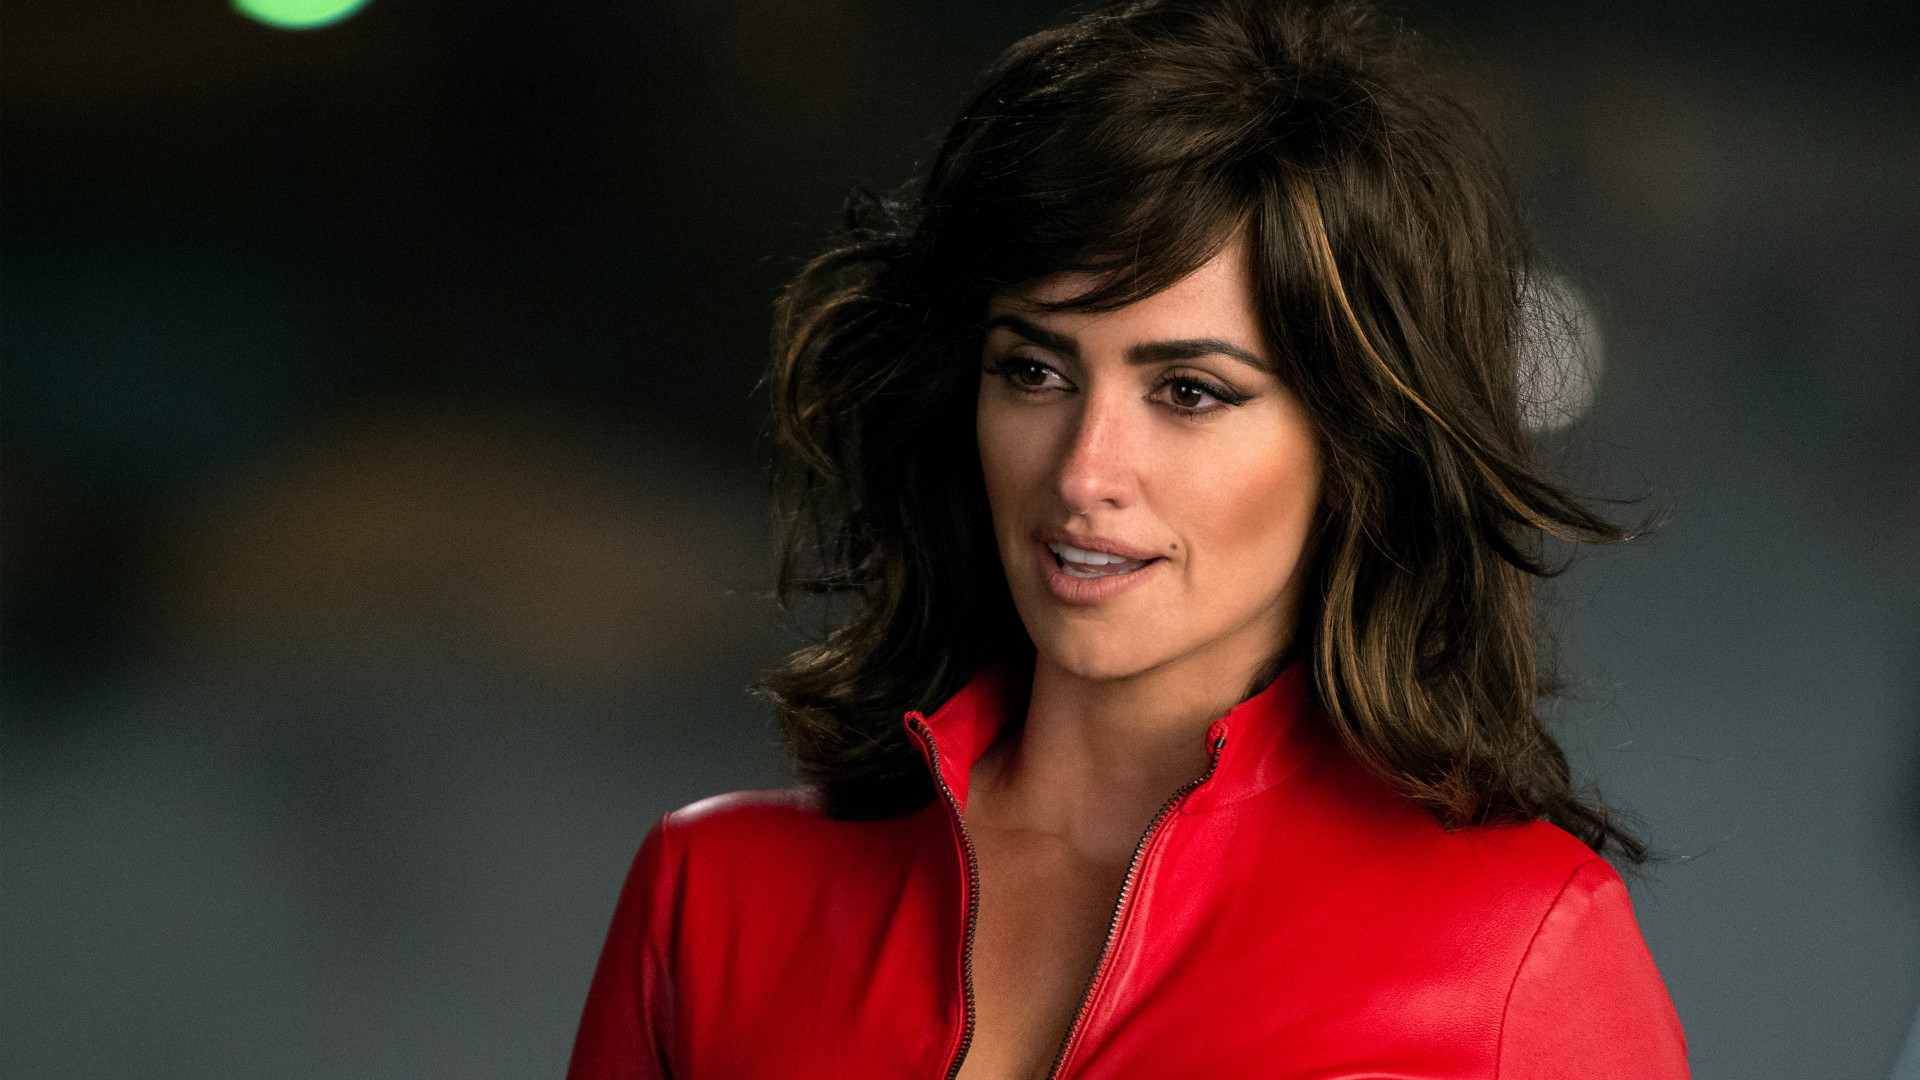 Daisy Iphone Wallpaper Penelope Cruz Valentina Valencia Wallpapers Hd